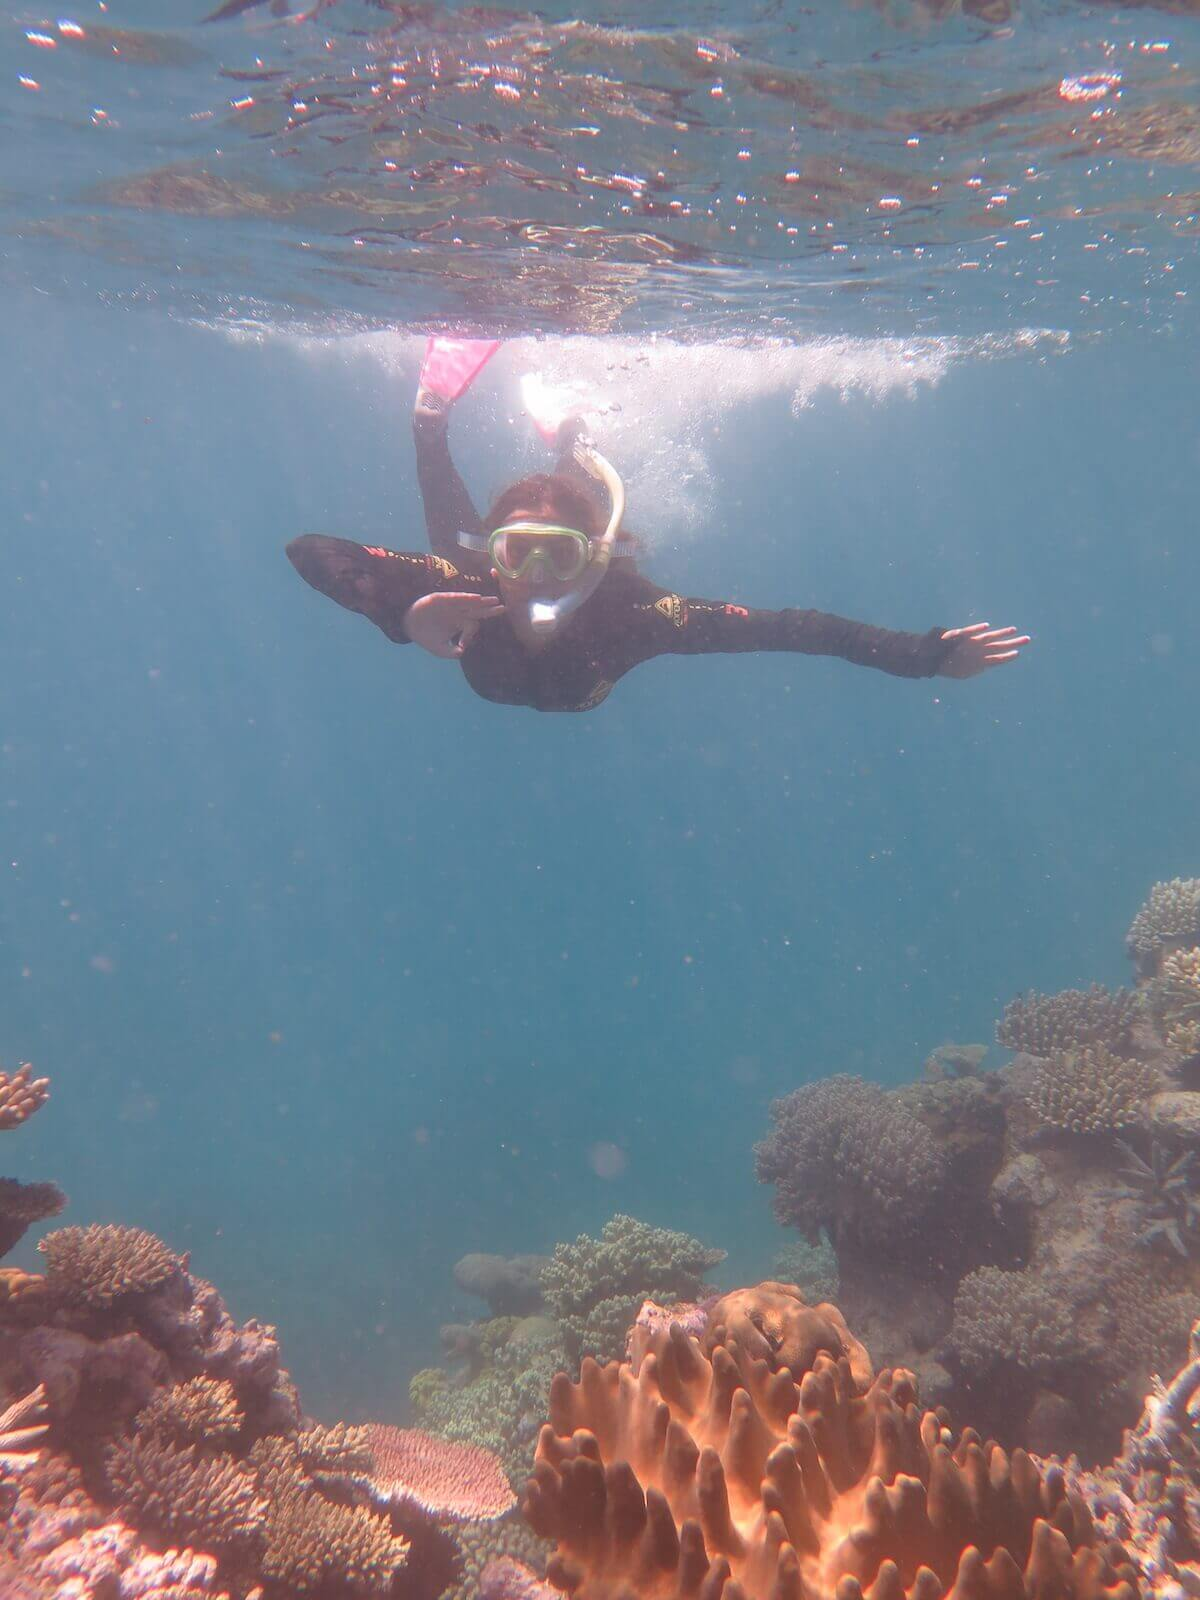 I'M 8 HOURS AHEAD Bucket List: snorkelling the Great Barrier Reef